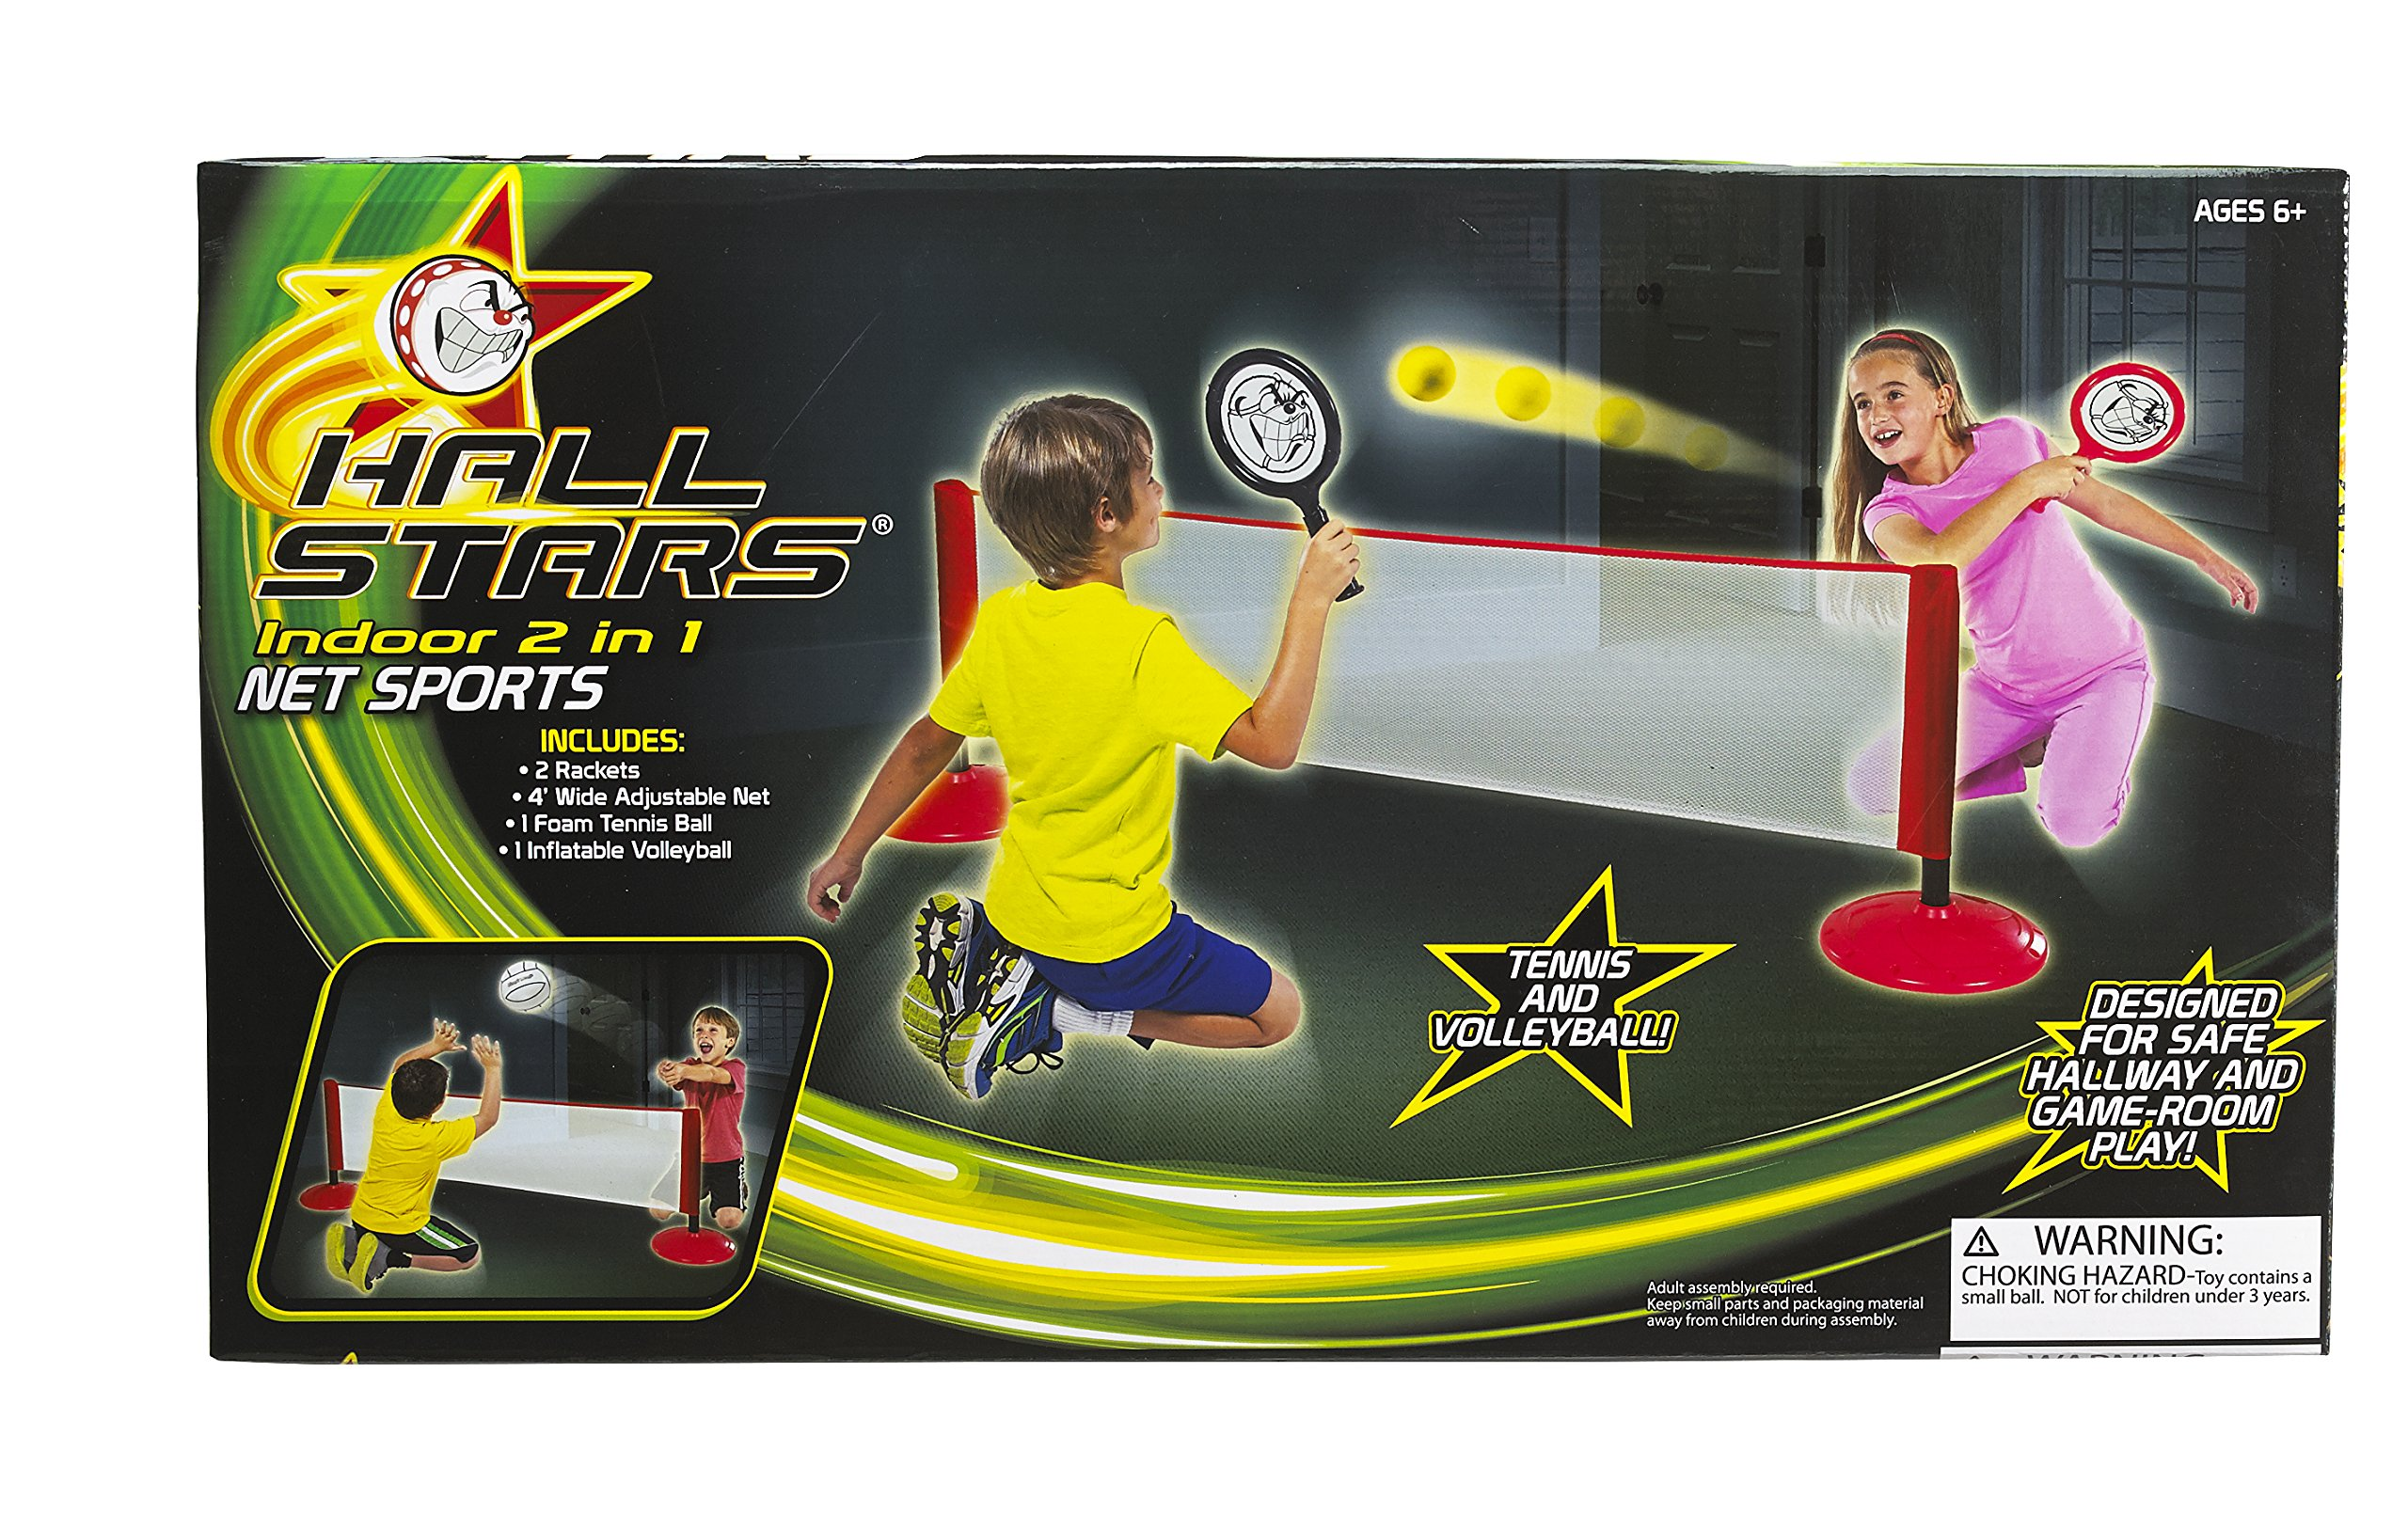 Hall Stars Volleyball and Tennis 2-in-1 Net Sports Play Set